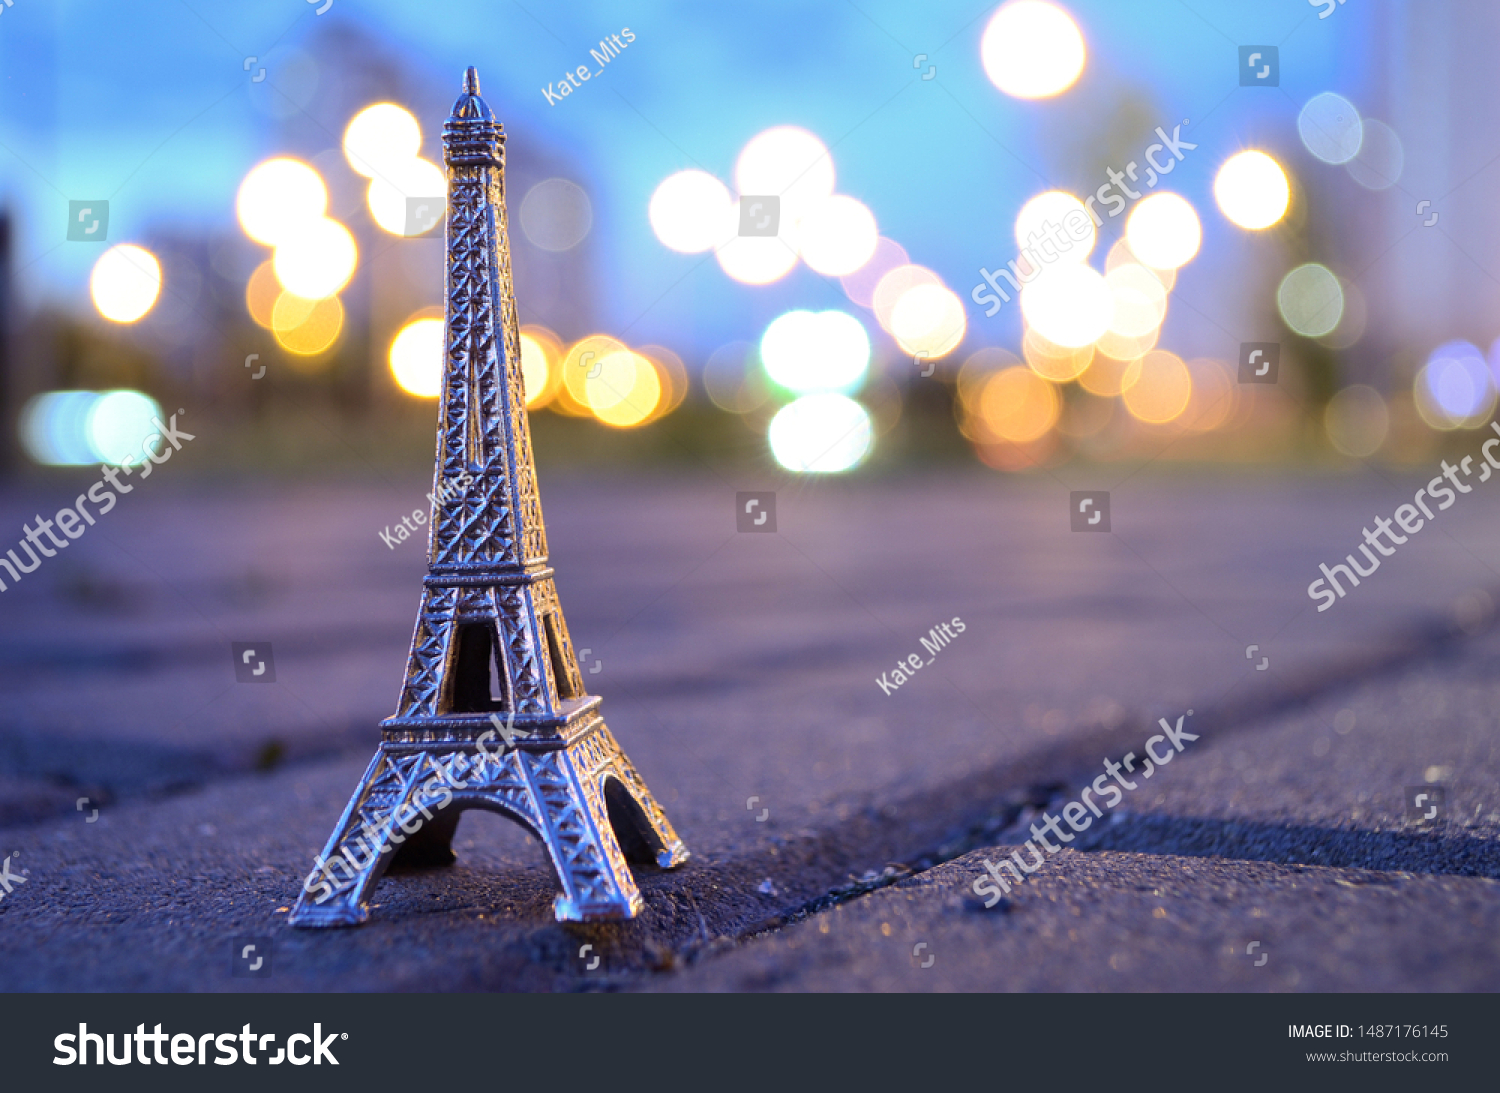 Eiffel tower figure on a background of evening bokeh lights. Located on the paving stones, asphalt. #1487176145